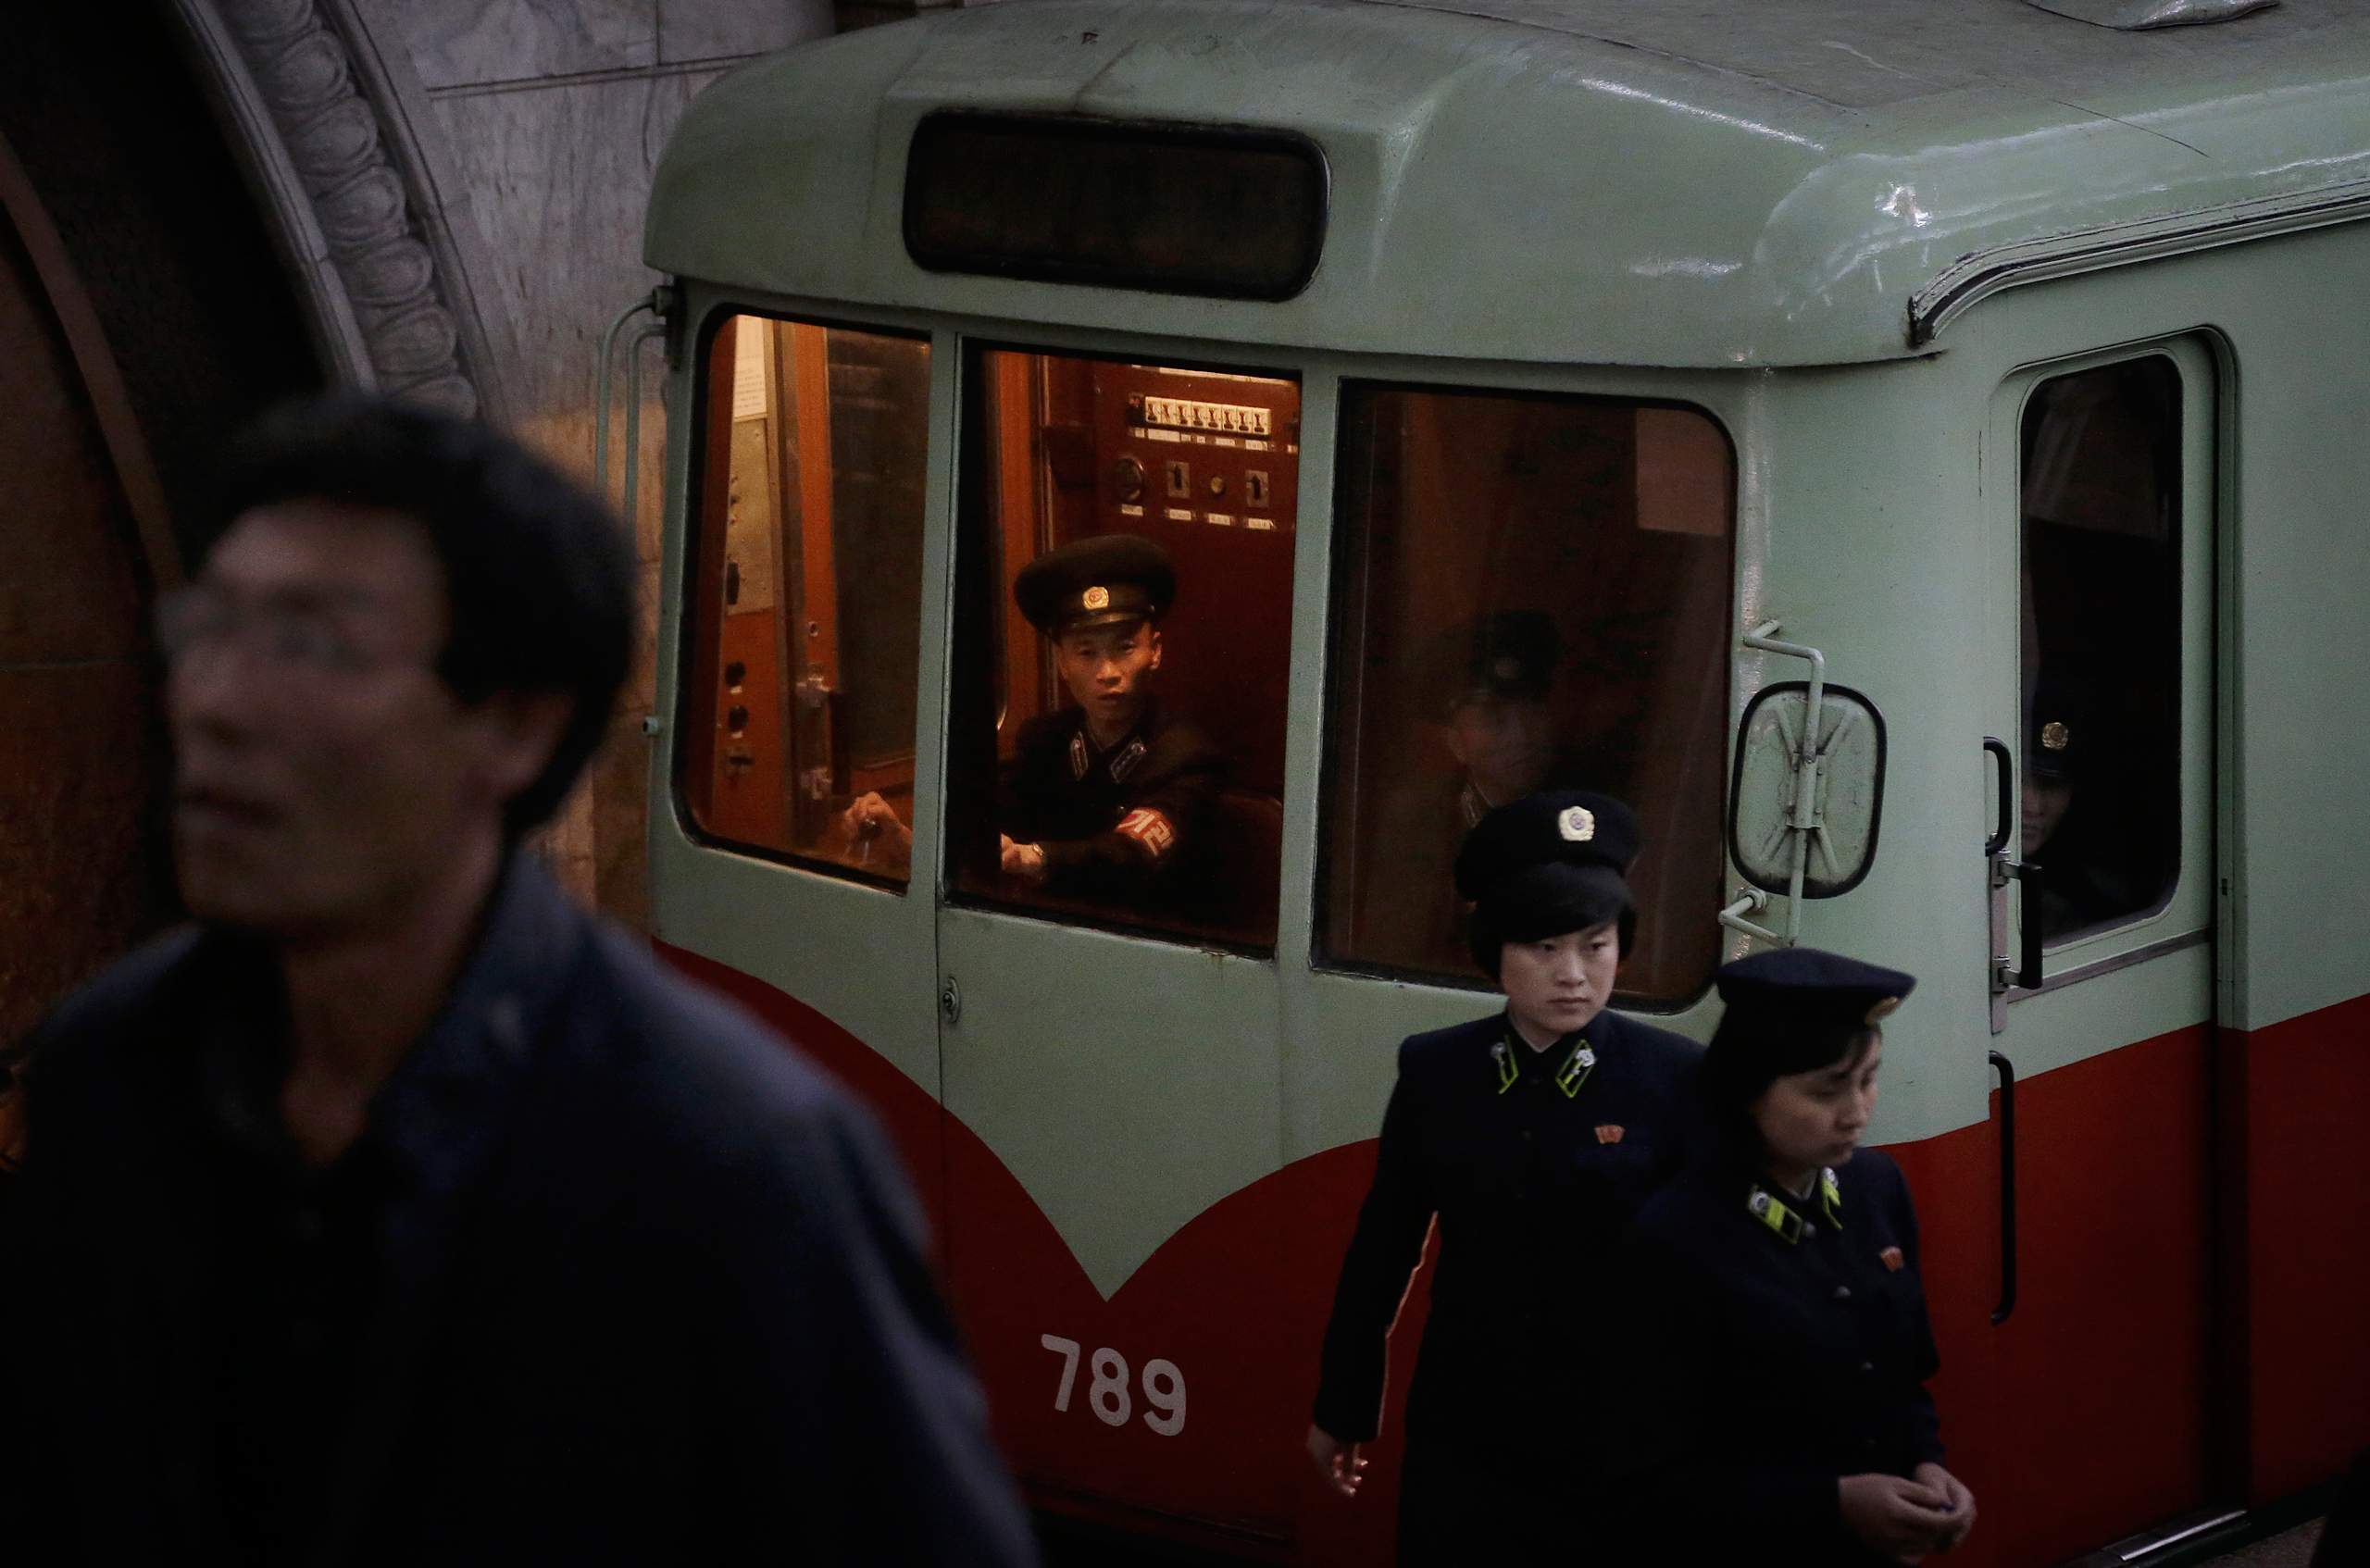 A train conductor and station attendants work in a subway station as seen during a press tour in Pyongyang on May 7, 2016.